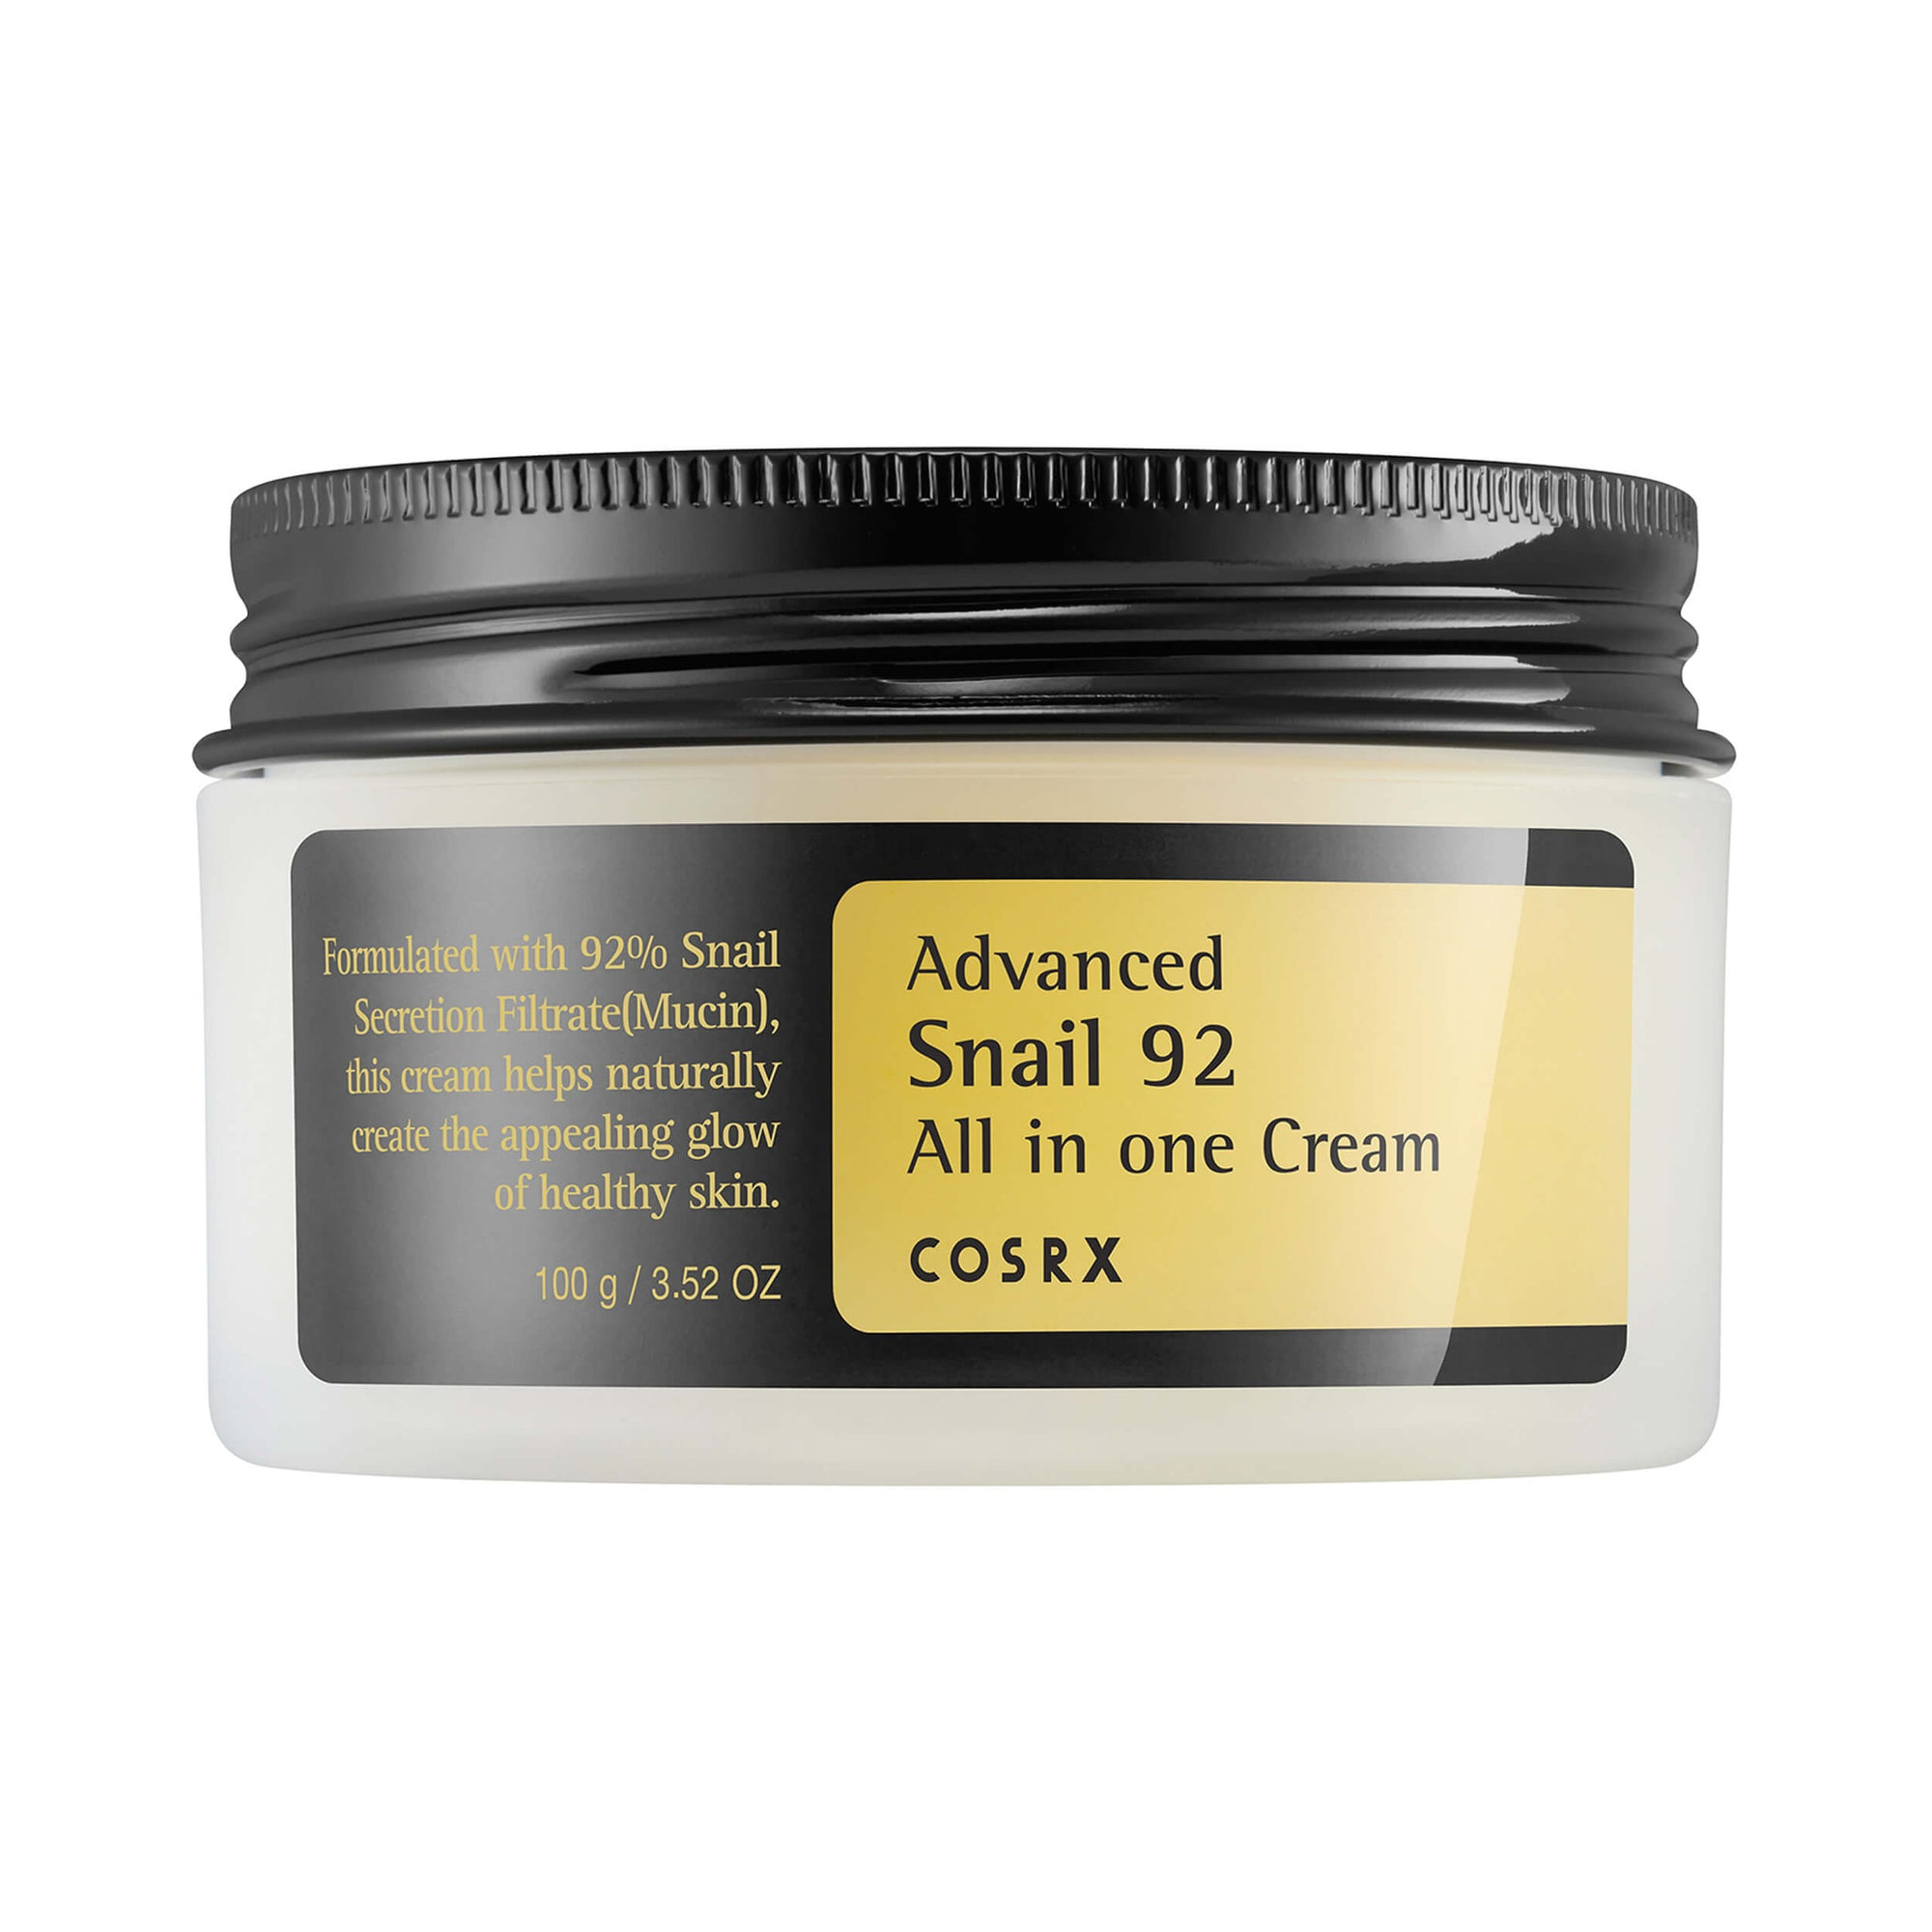 Cosrx Advanced Snail 92 All in One Cream 100g